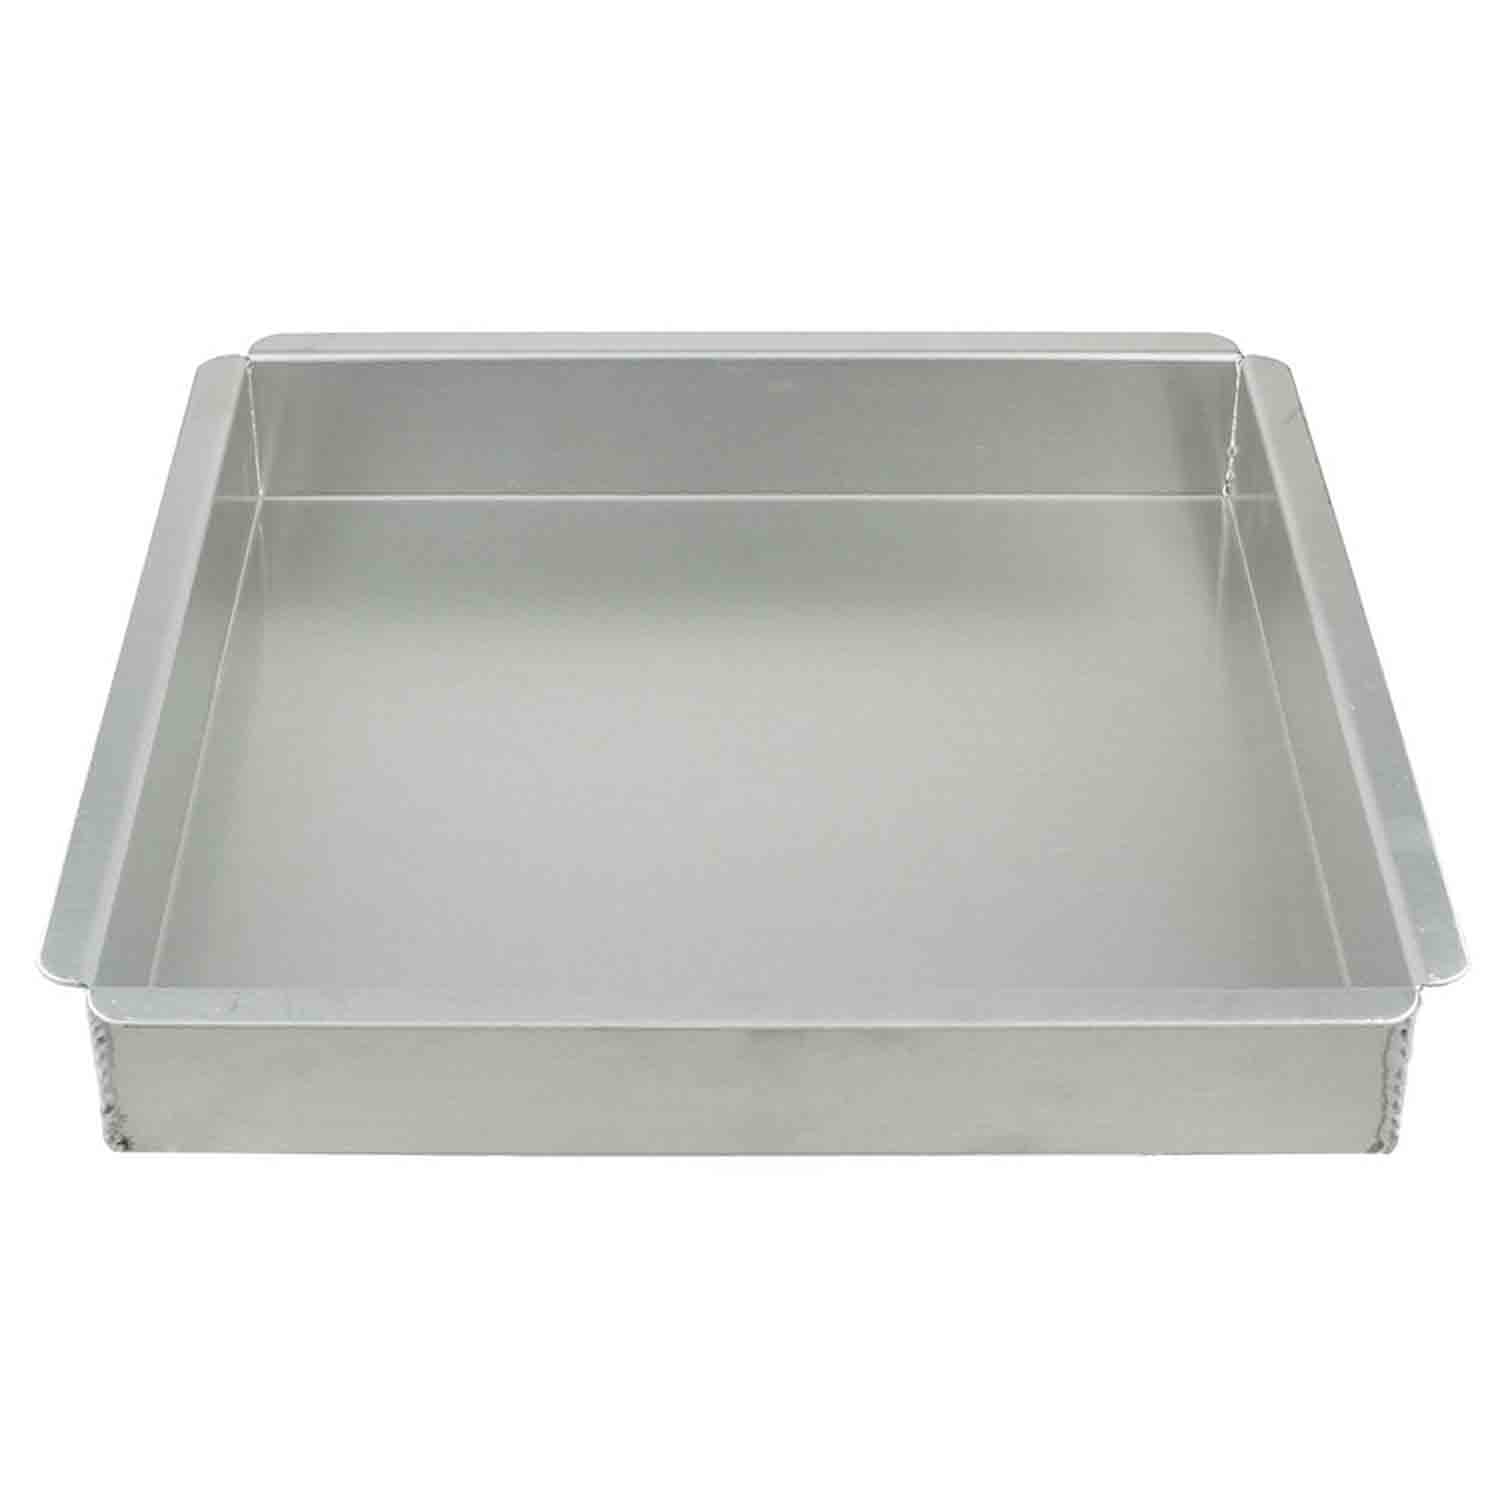 "14 x 2"" Magic Line Square Cake Pan"